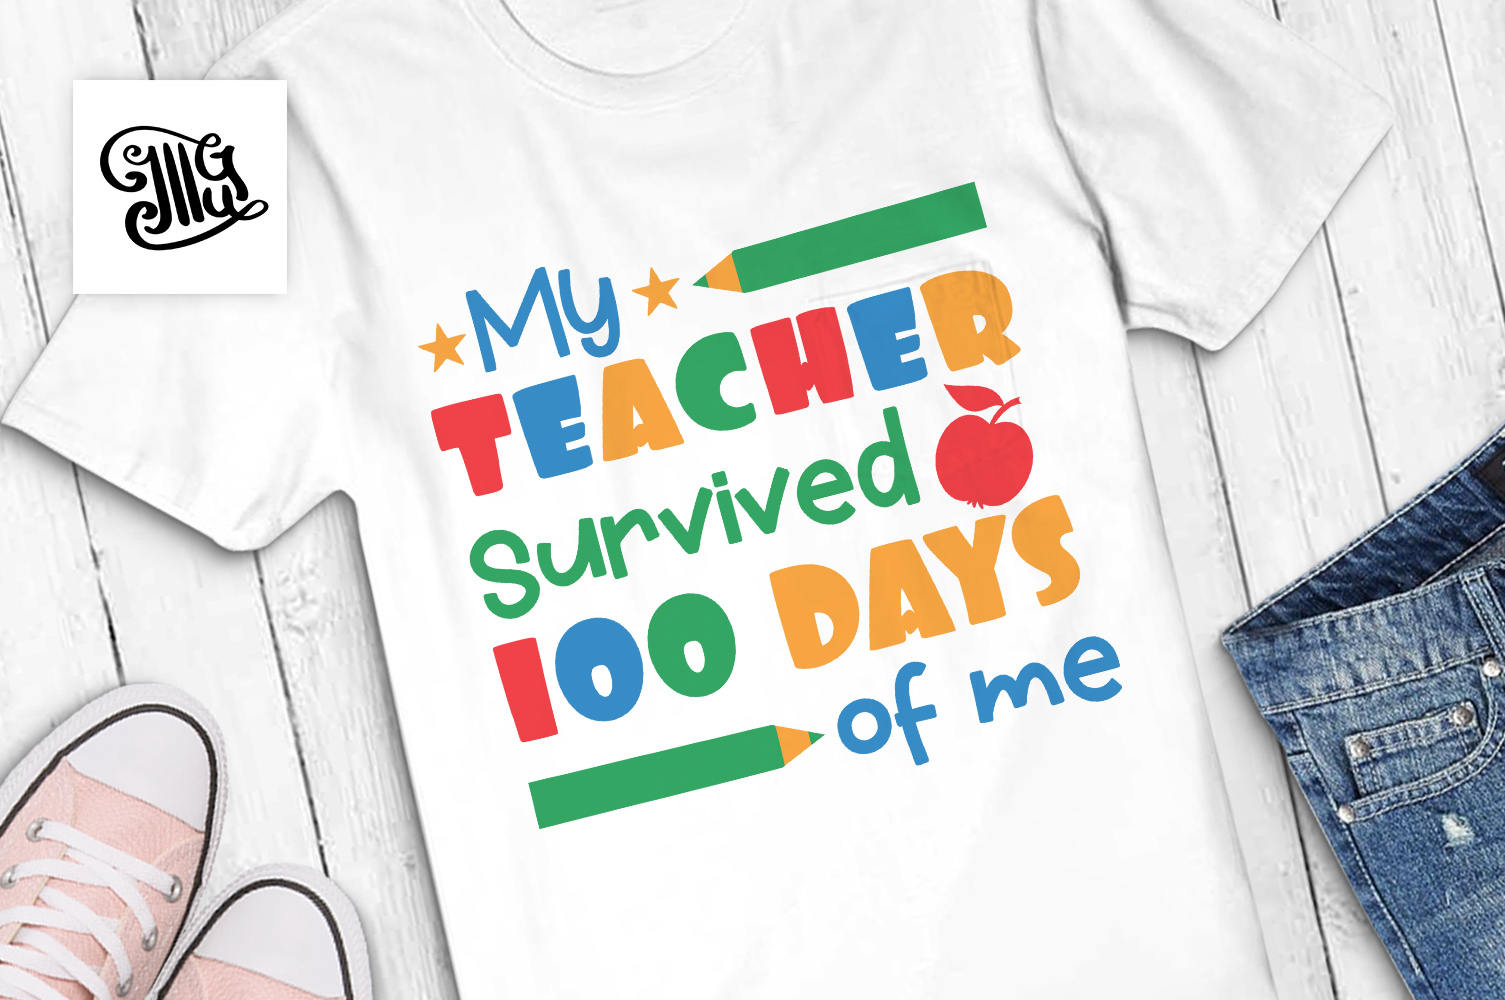 My teacher survived 100 days of me svg example image 1